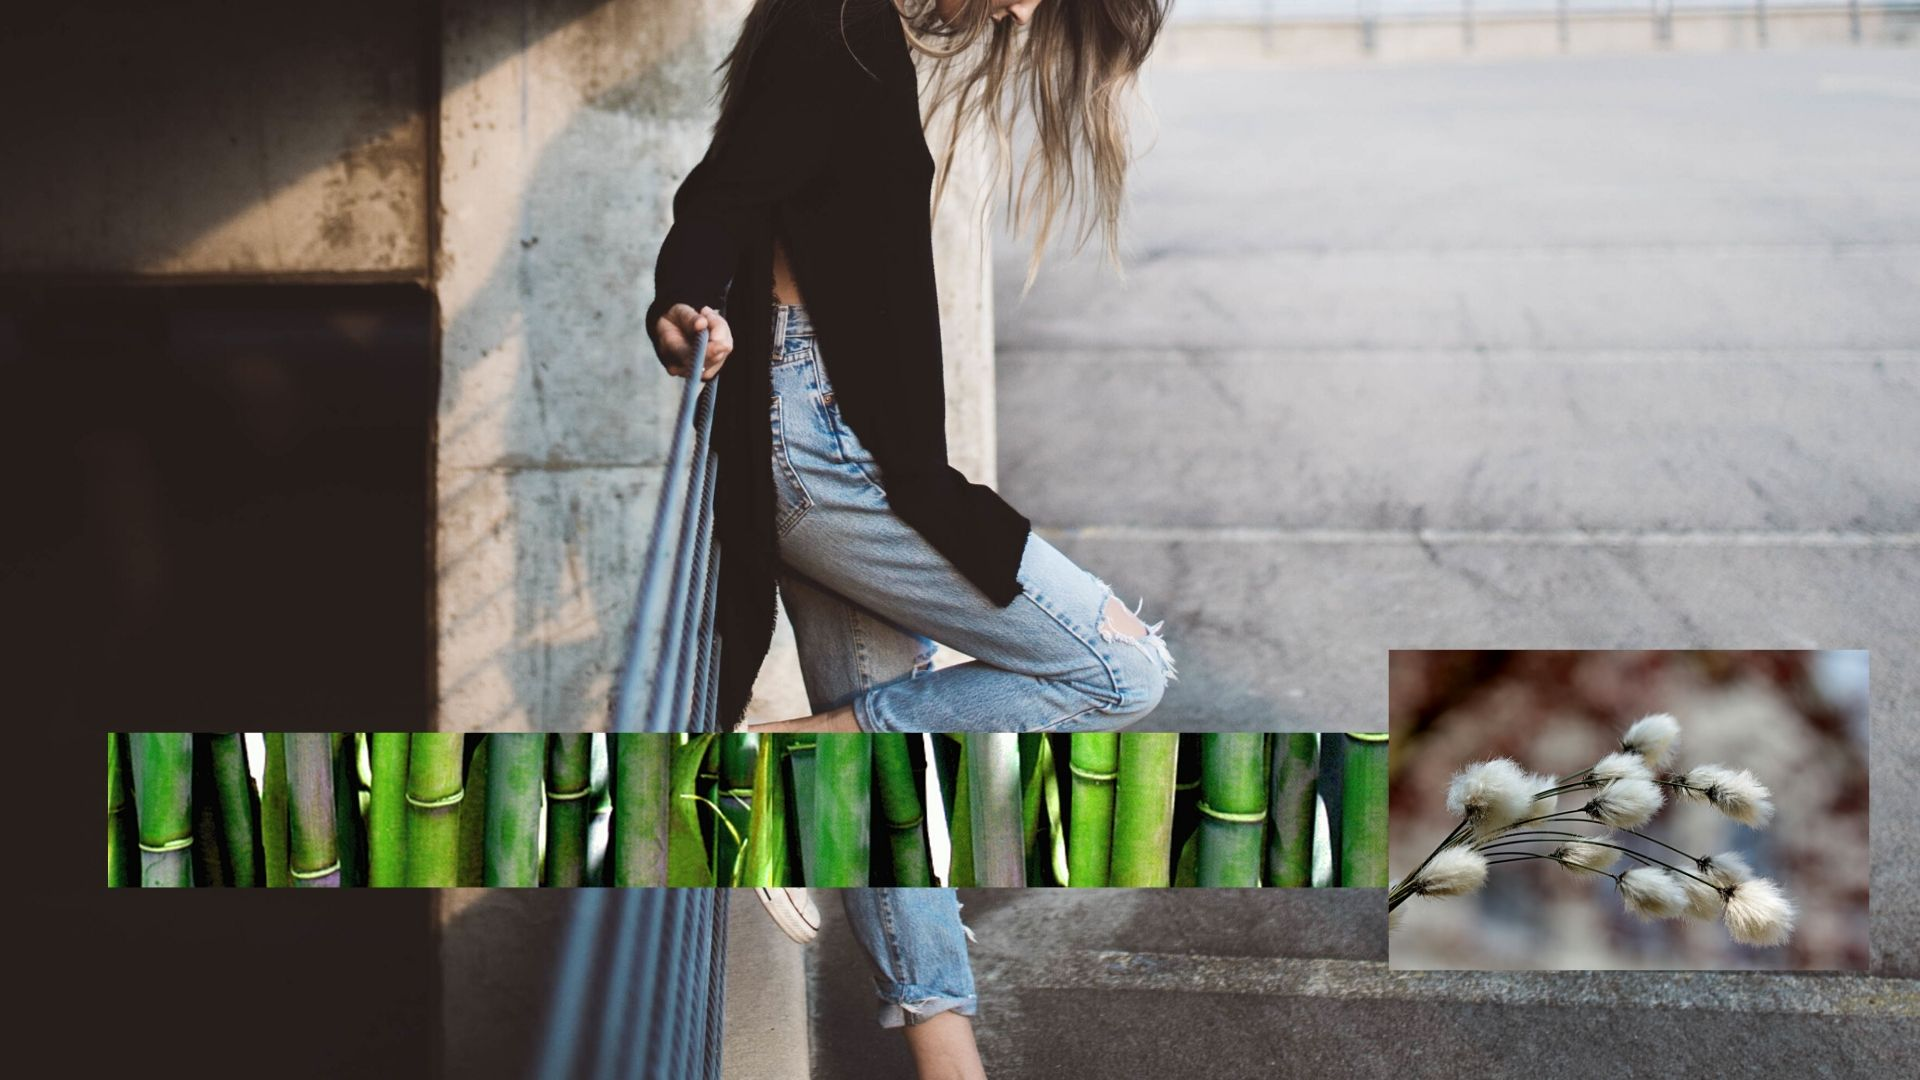 10 Sustainable Fashion and Accessory Brands You'll Love